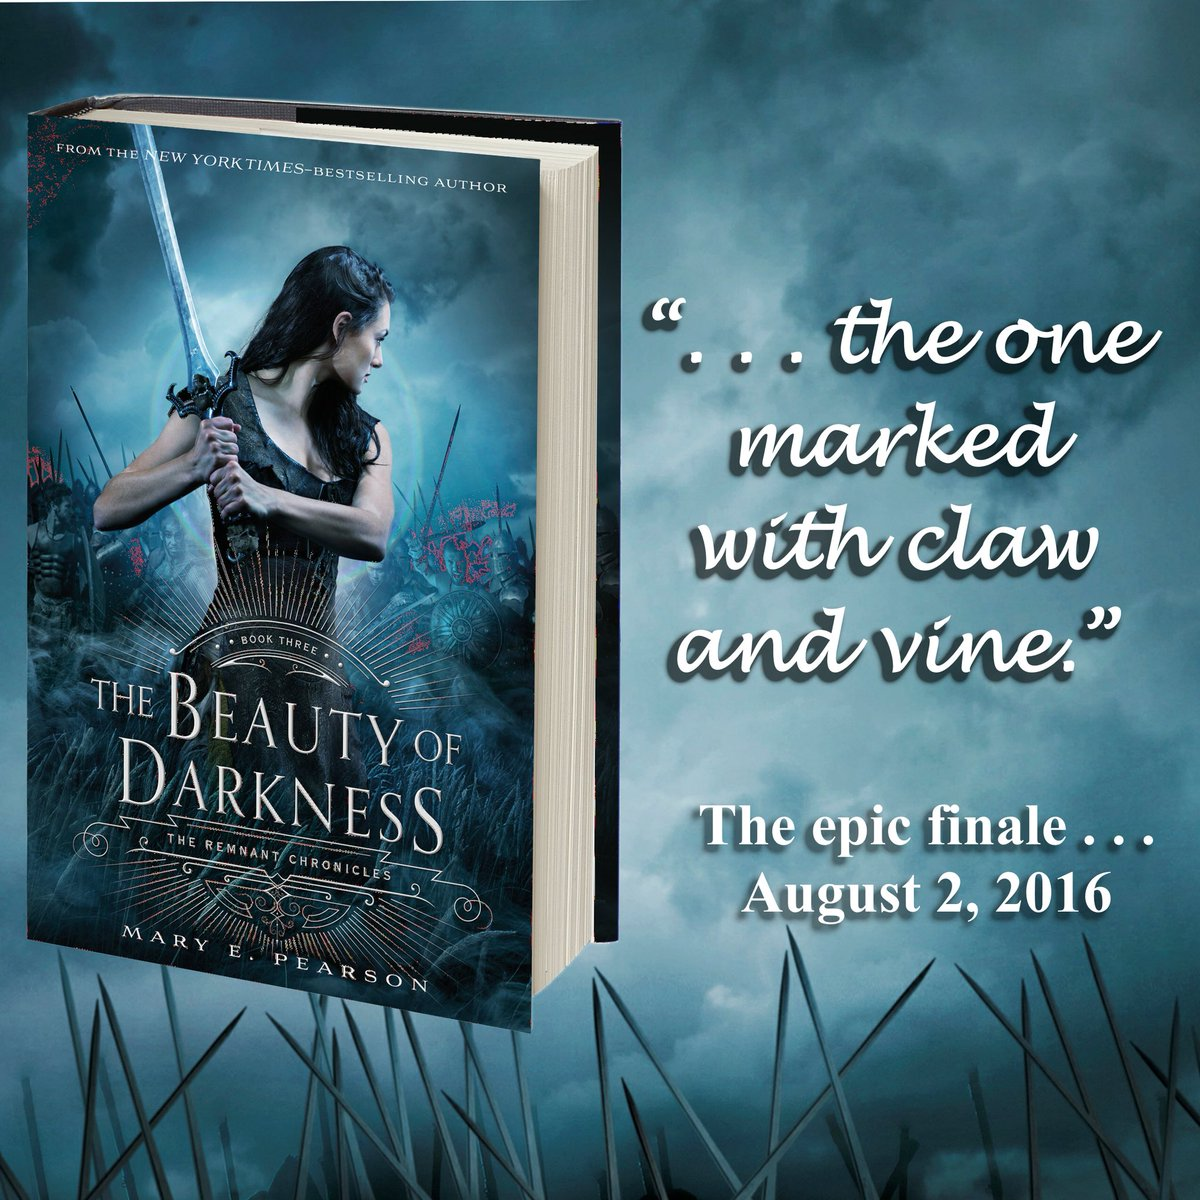 Six weeks from today #TheBeautyOfDarkness will be here! To celebrate, an artsy giveaway: https://t.co/8zwuLG91iR https://t.co/0kby5MH0QP